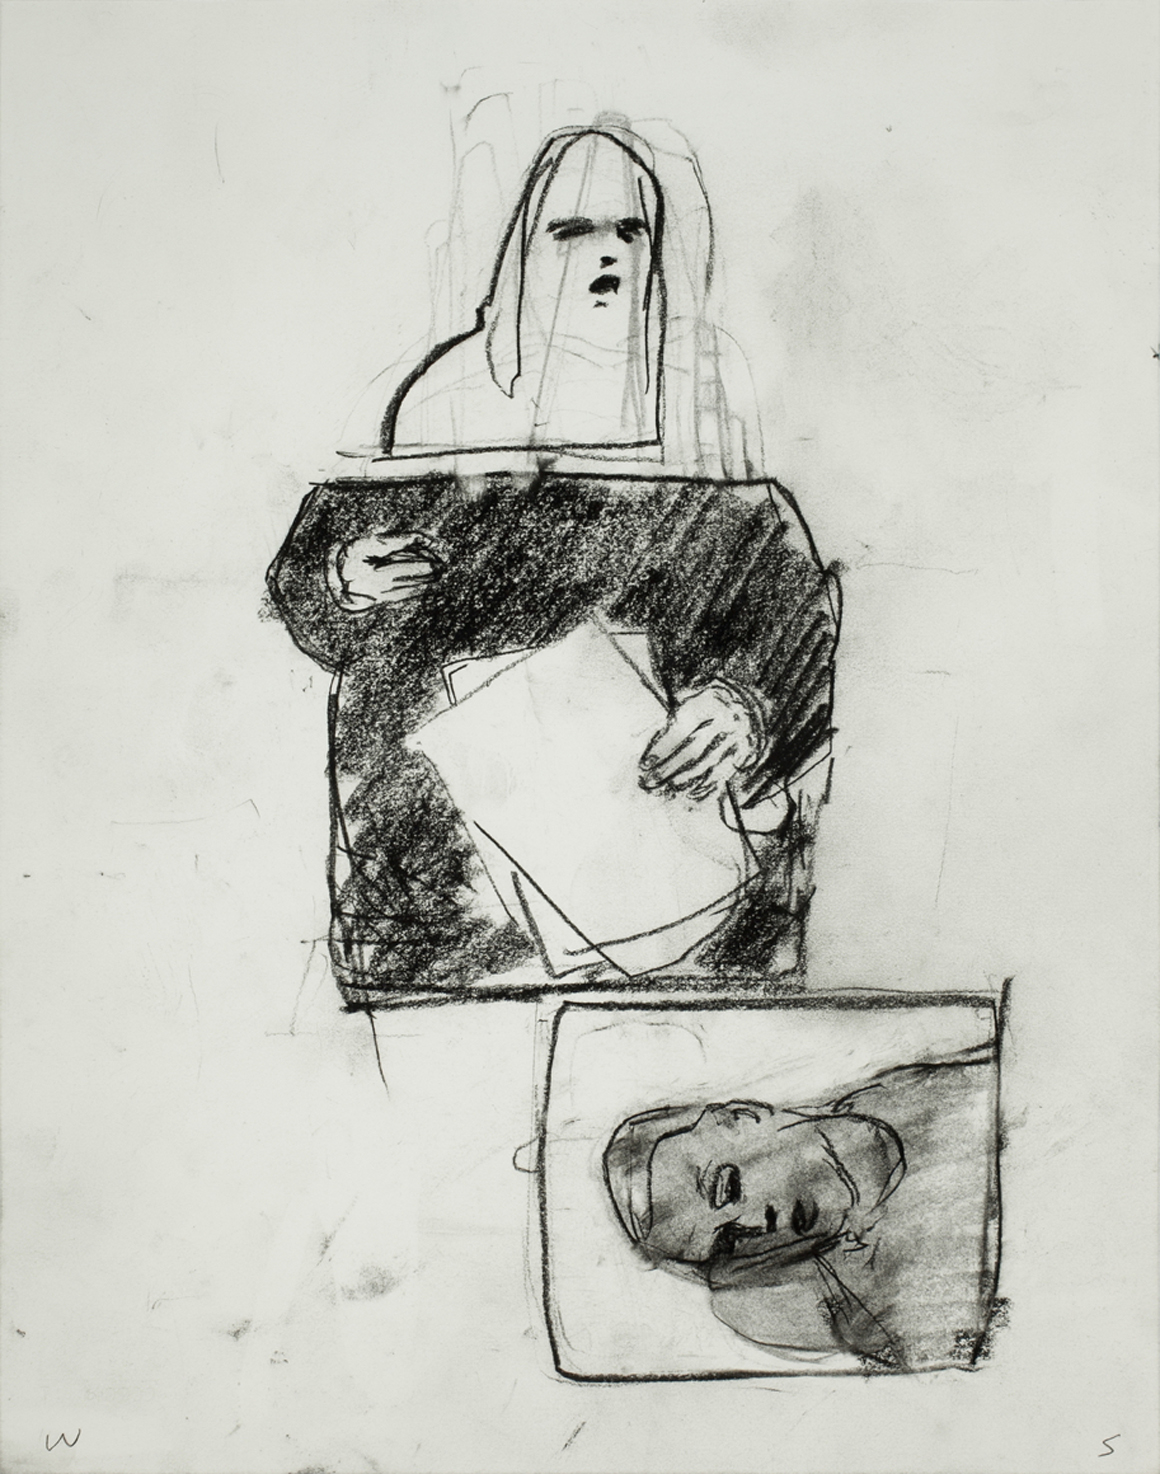 <p><em>Untitled (Tuesday 11/03/09)</em><span class='media'>charcoal on paper</span>14 x 11 in  (35.6 x 27.9 cm)<br>19 x 16 in  (48.3 x 40.6 cm) Framed (framed)<br>2009<br><a class='inquire' href='mailto:info@gildargallery.com?subject=Artwork Inquiry WSTO0009&body=I am interested in finding out more about Untitled (Tuesday 11/03/09) by William Stockman'>Inquire</a></p>